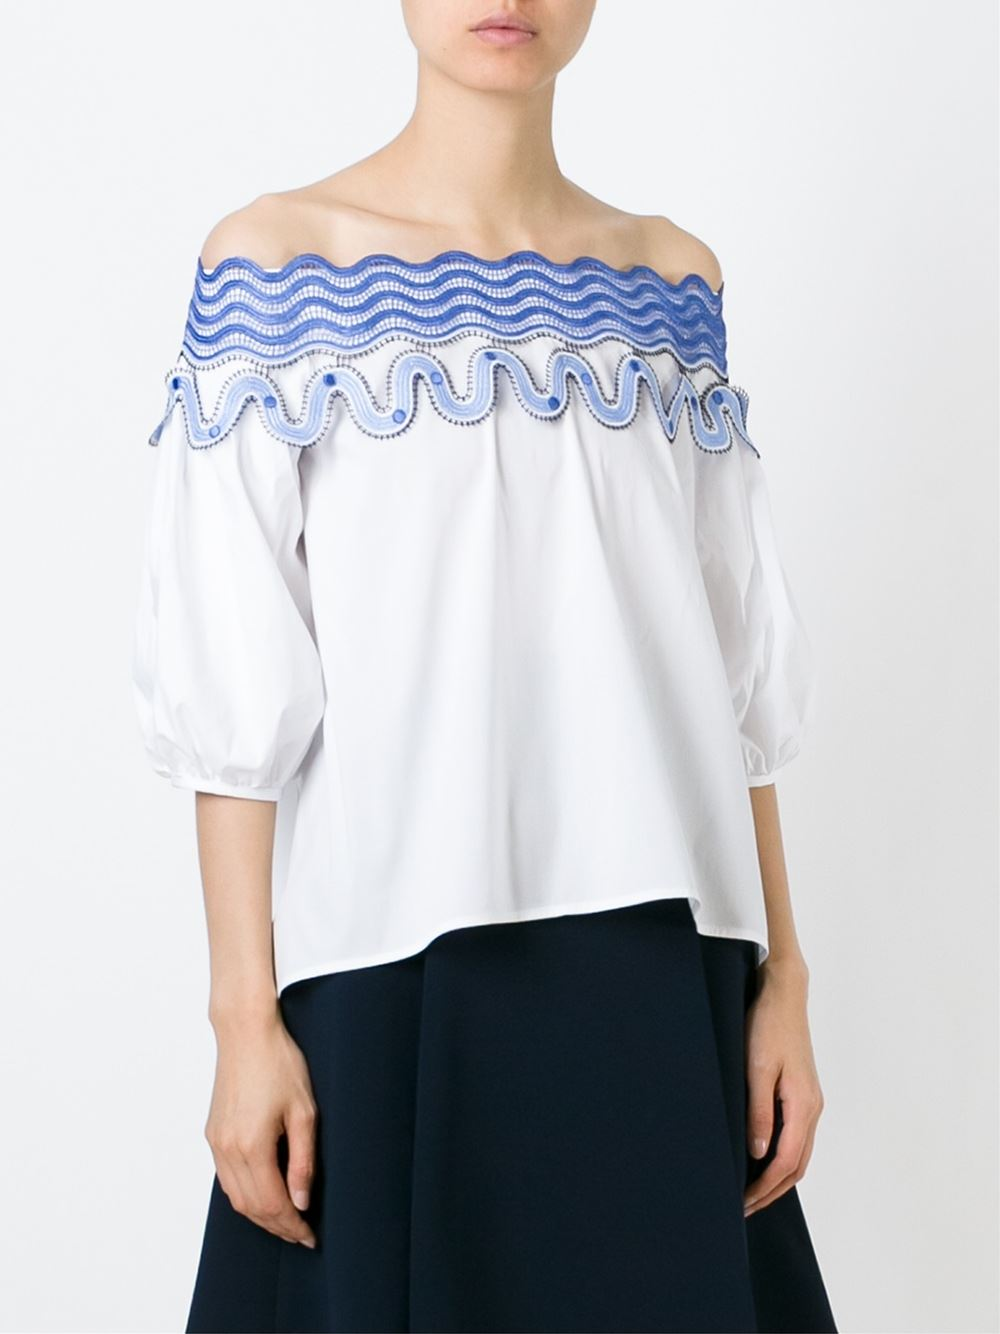 Peter Pilotto Pallas Blouse